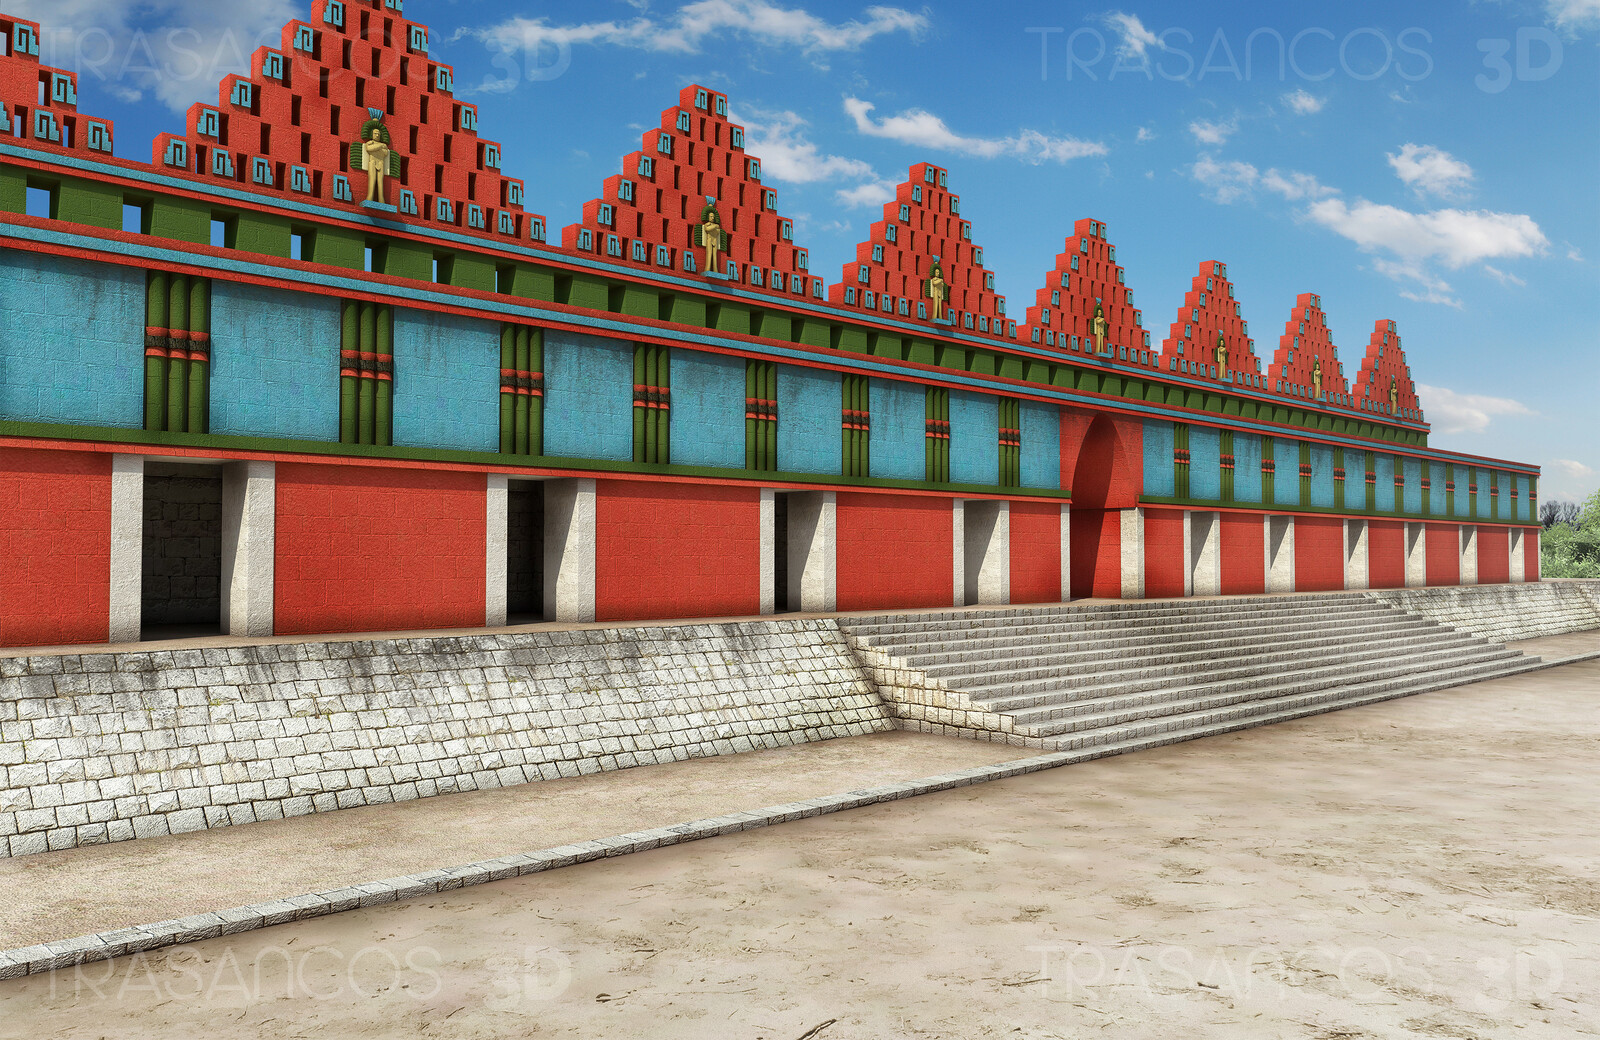 Reconstruction of the House of Pigeons in Uxmal.